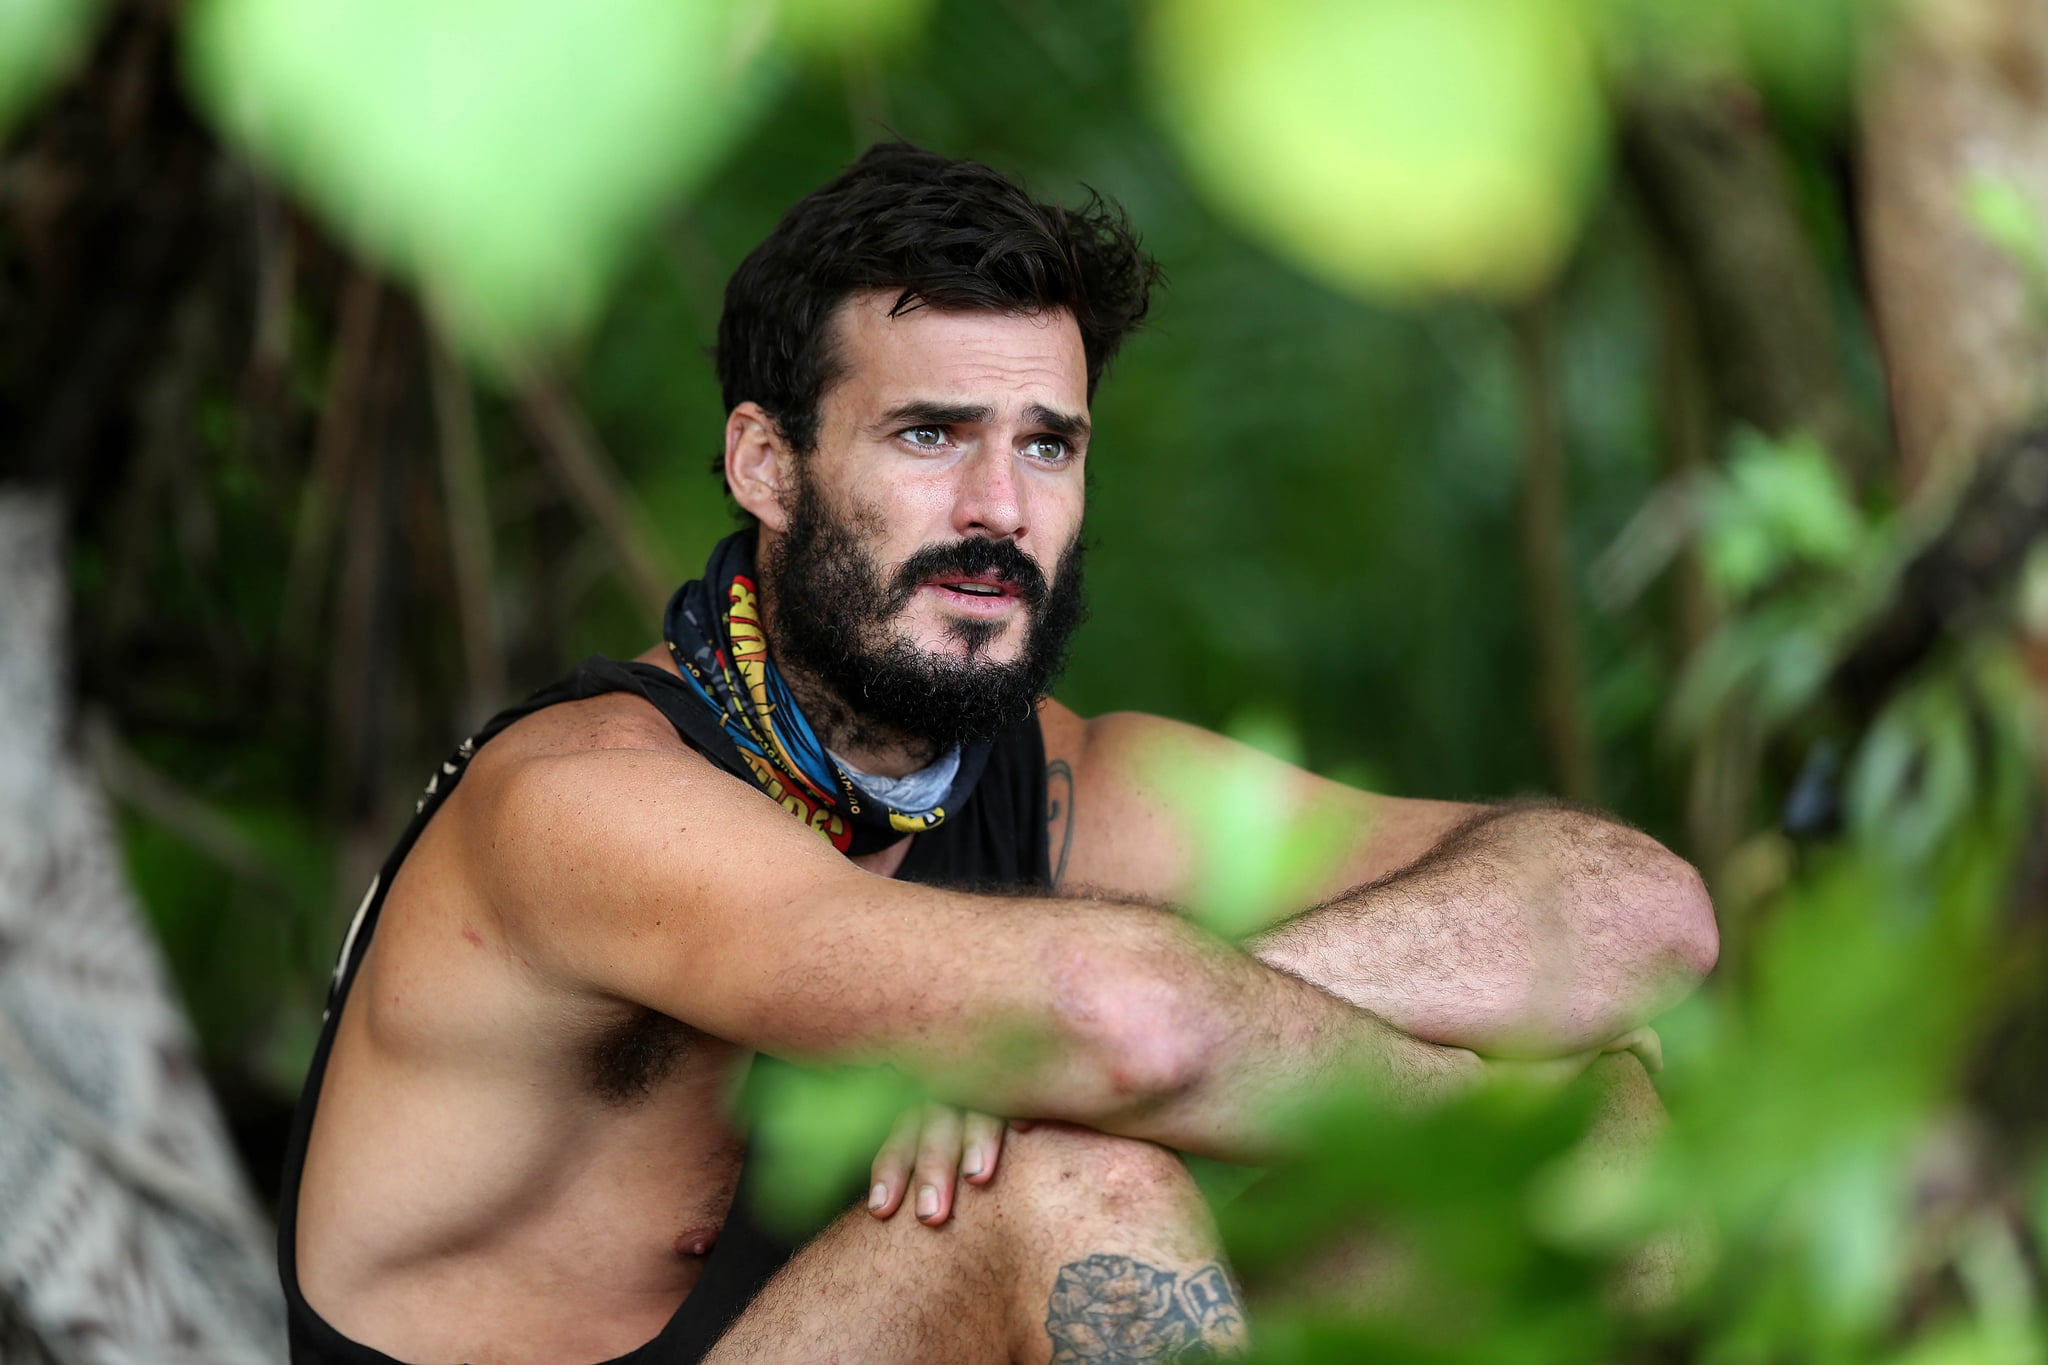 survivor australia - photo #4